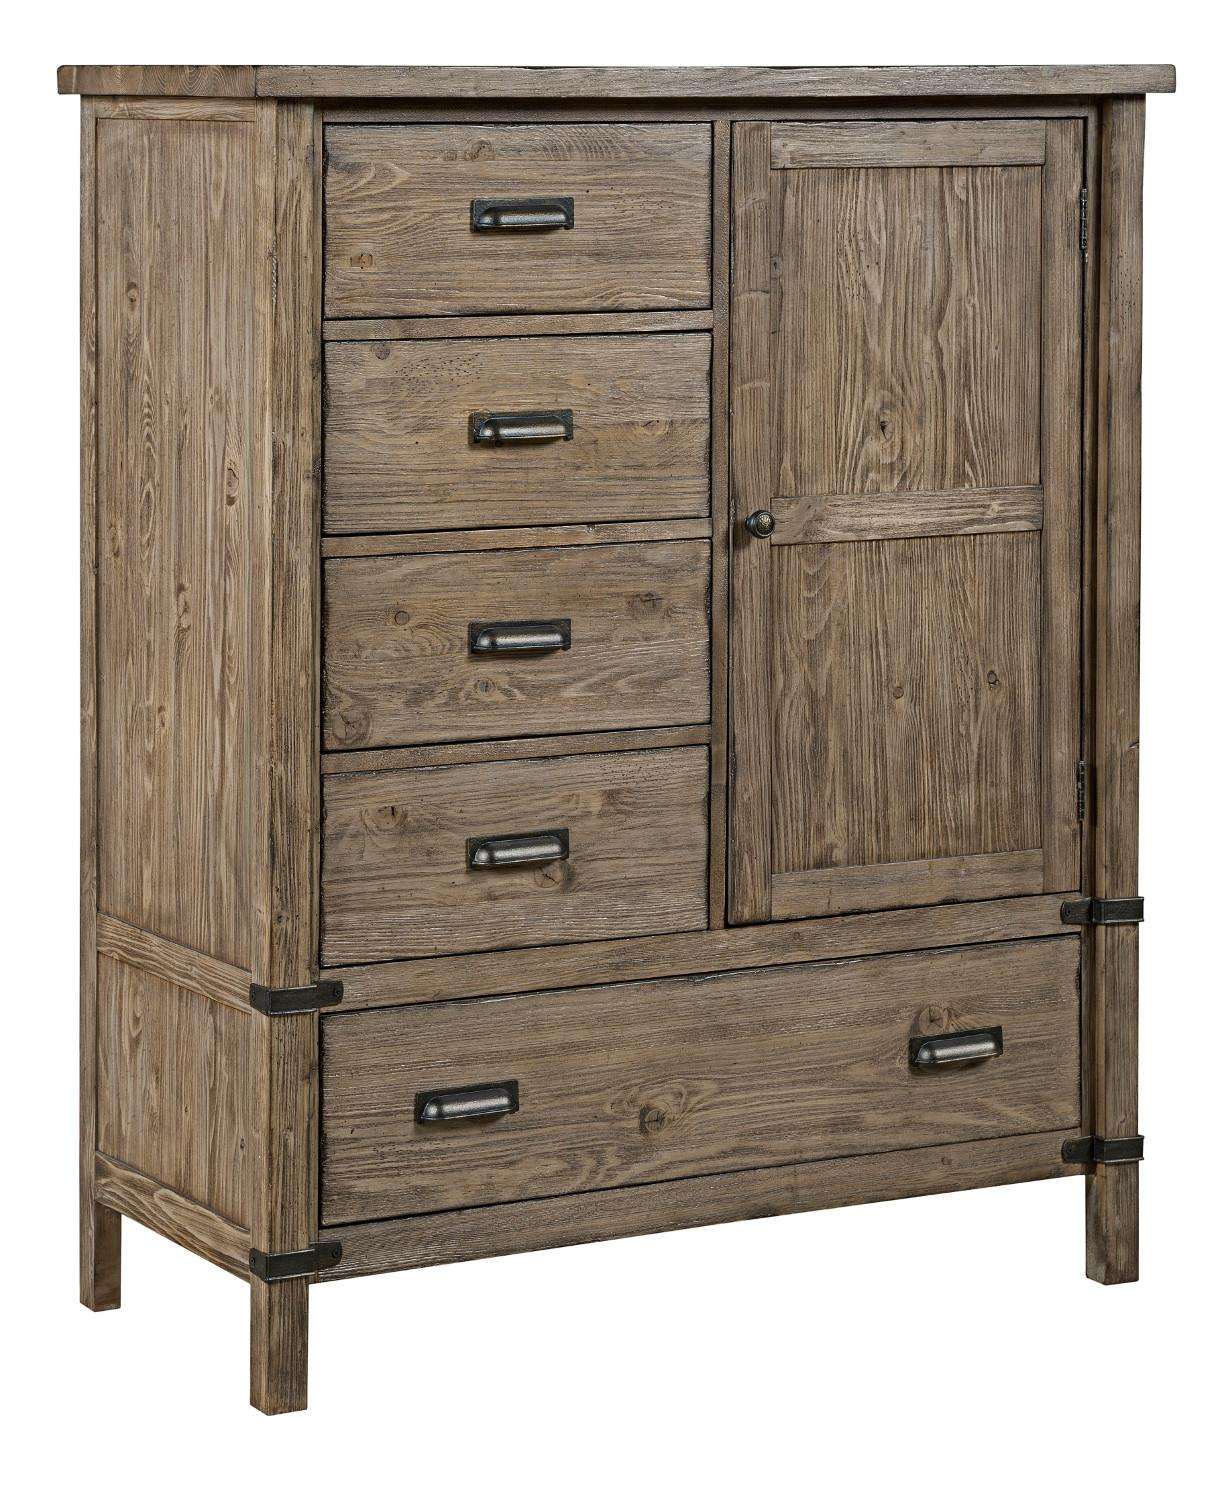 Foundry Door Chest at Stoney Creek Furniture